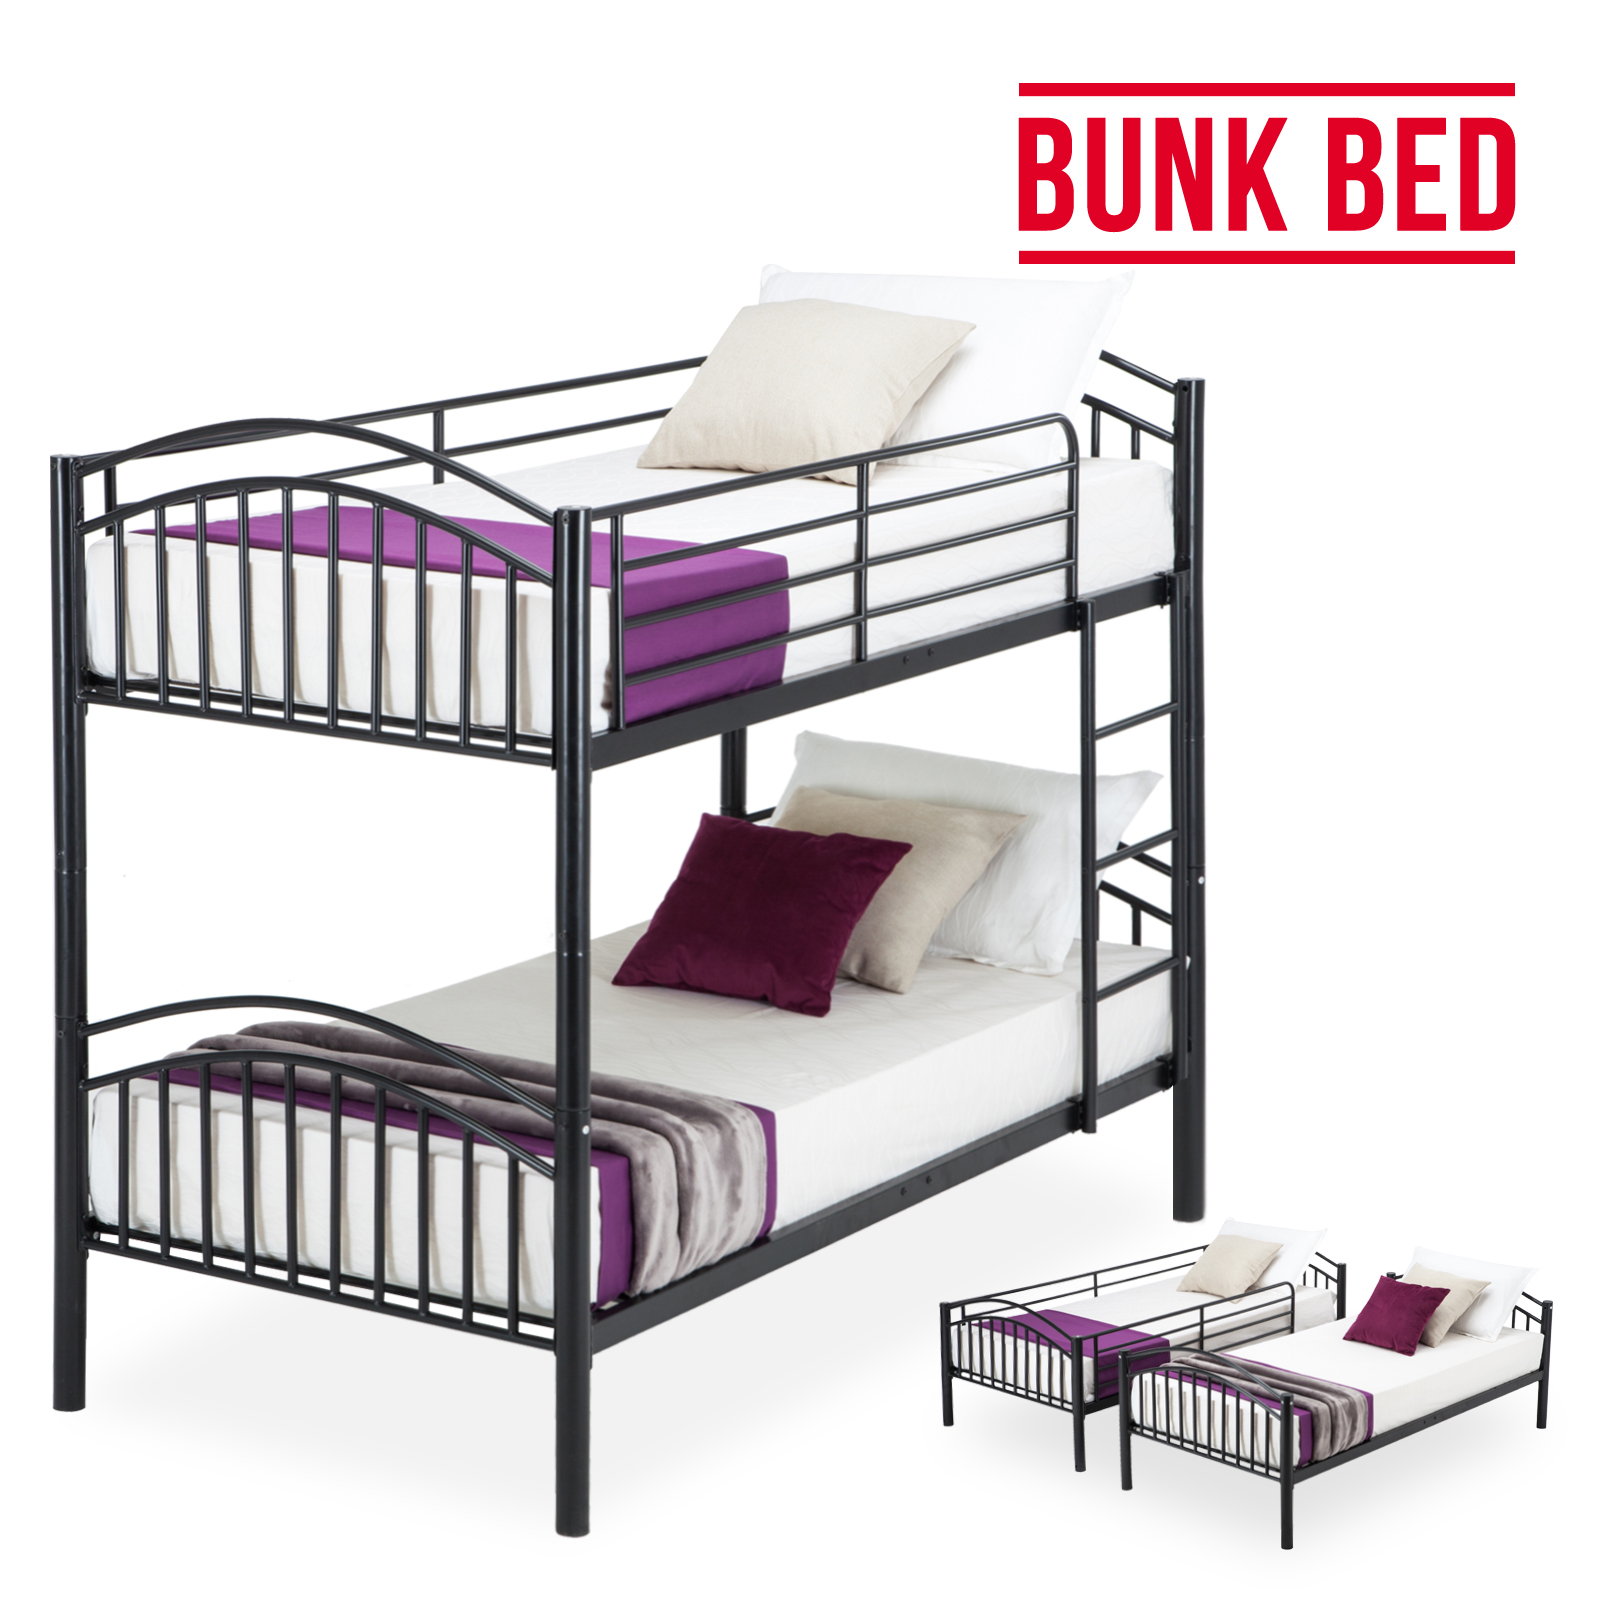 Modern 3ft black single metal bunk bed frame 2 person for for Single bunk bed